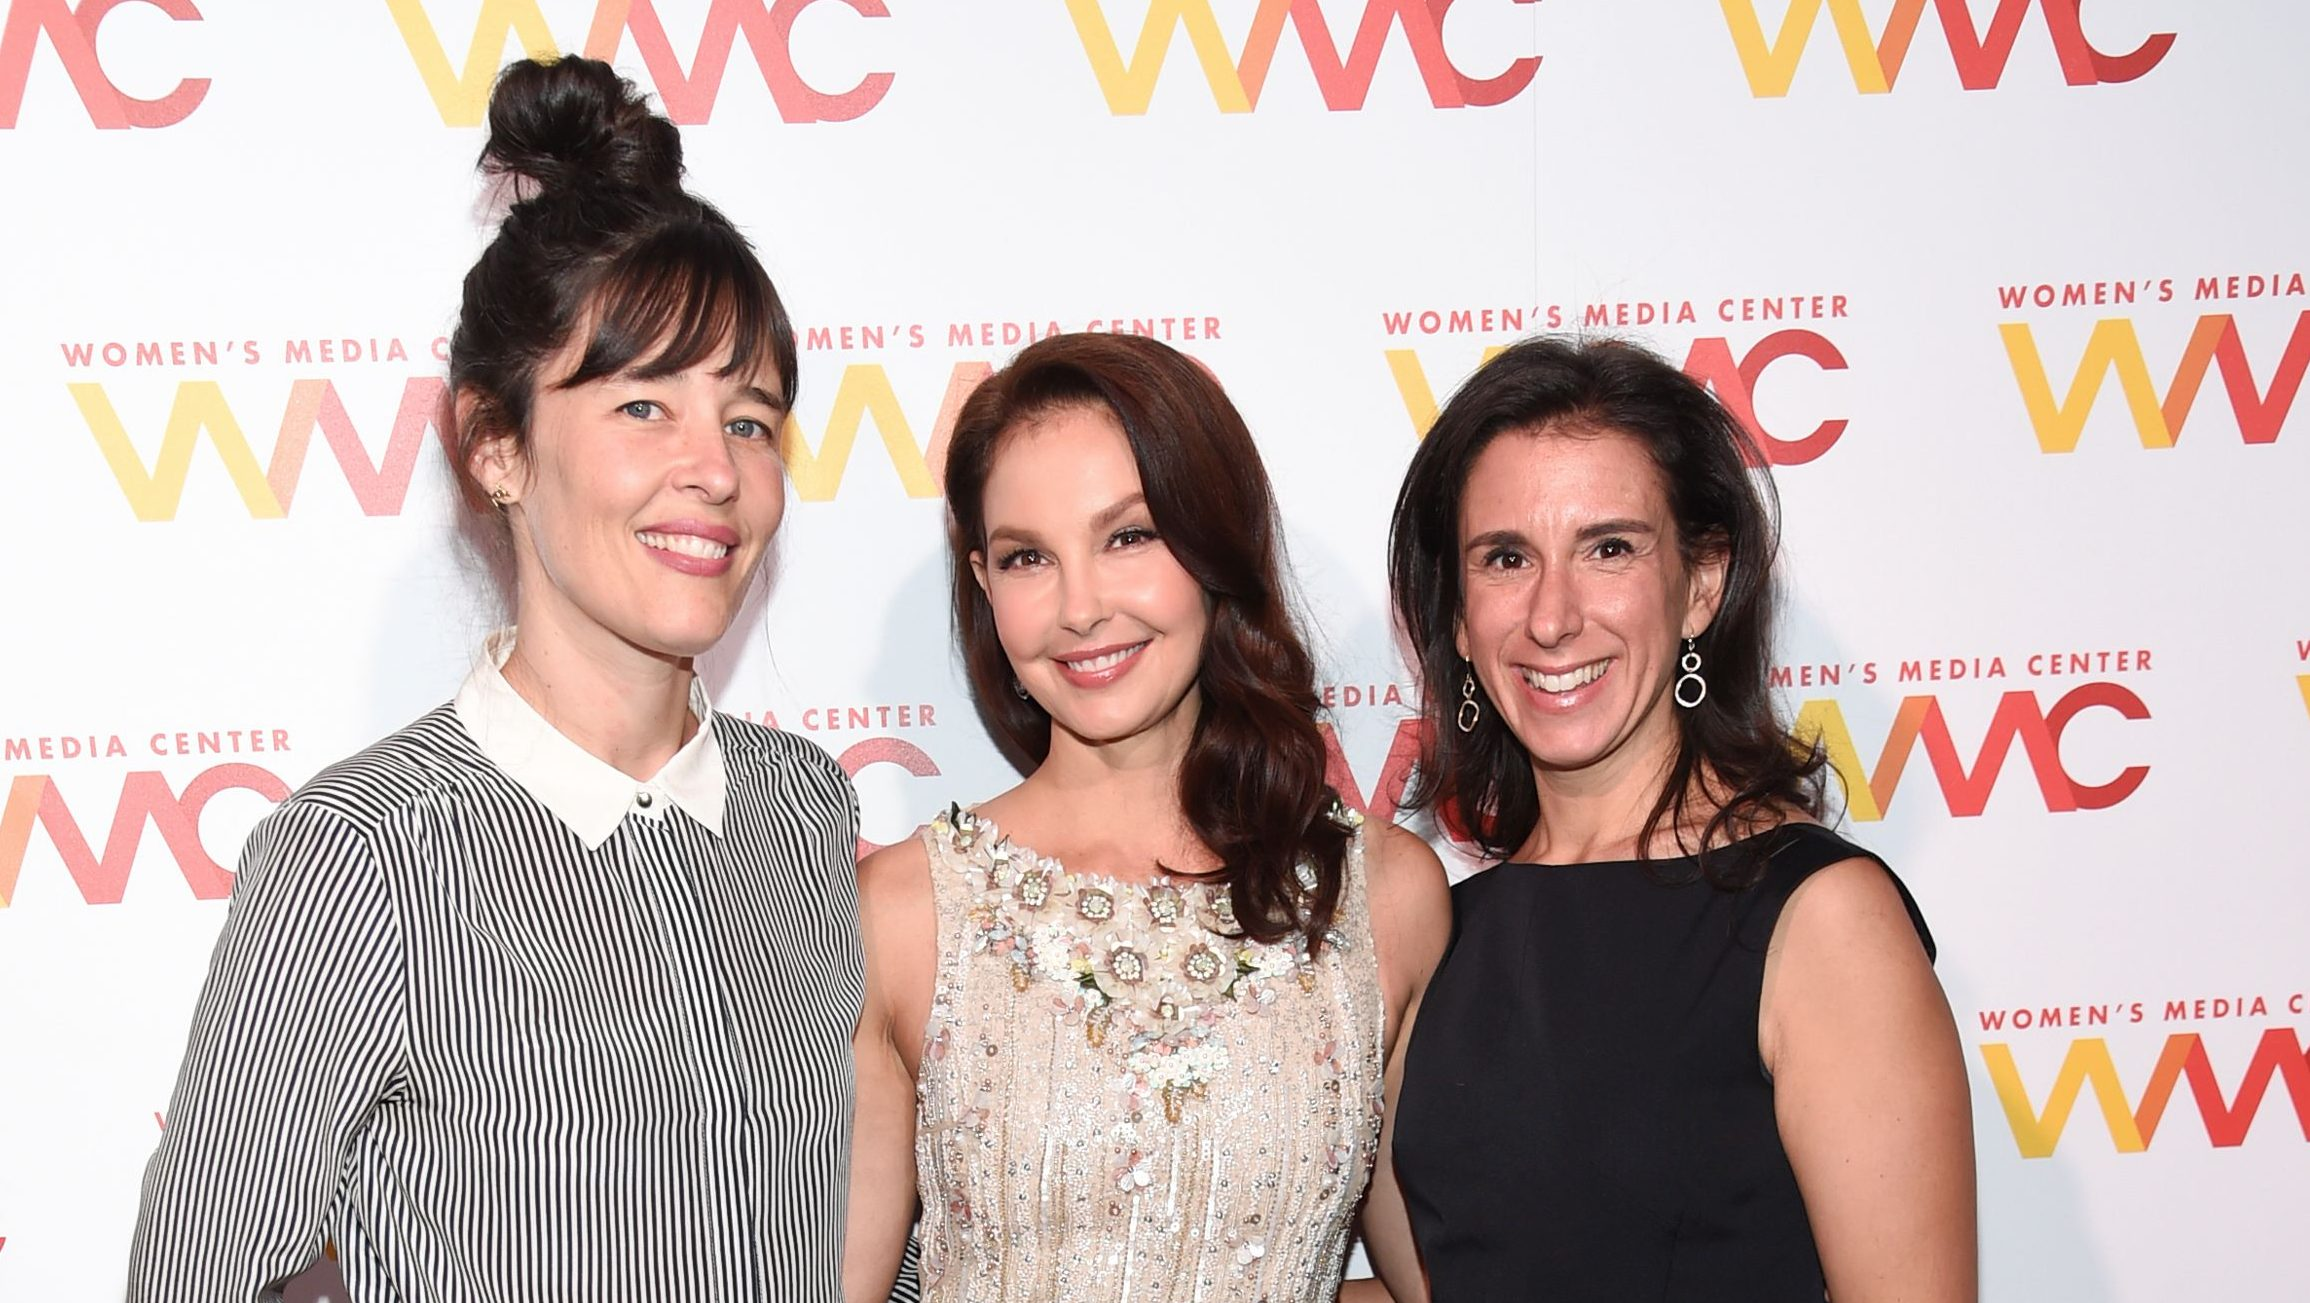 New York Times journalist Megan Twohey, left, actress Ashley Judd, and New York Times journalist Jodi Kantor attend The Women's Media Center 2017 Women's Media Awards at Capitale on Thursday, Oct. 26, 2017, in New York. (Photo by Evan Agostini/Invision/AP)